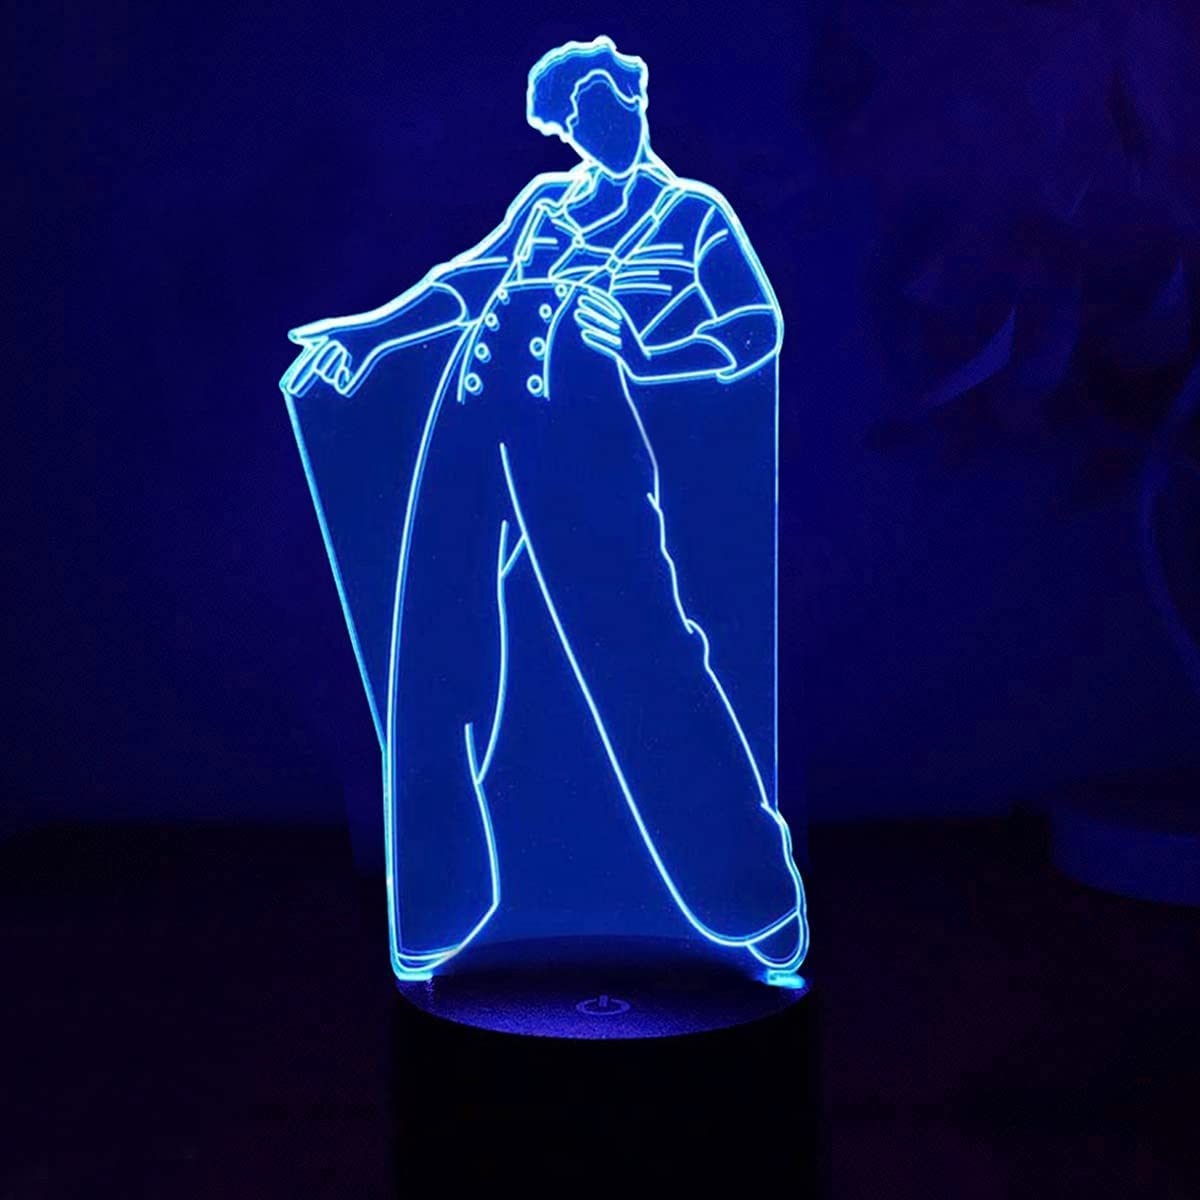 3D Night Light Harry Styles, 16 Colors Changing Remote Control and Smart Touch 3D Vision Lamp Singer Idol Creative Control Styles, Decor Bedside Table Lamp Birthday Gifts Toys for Harry Styles Fans